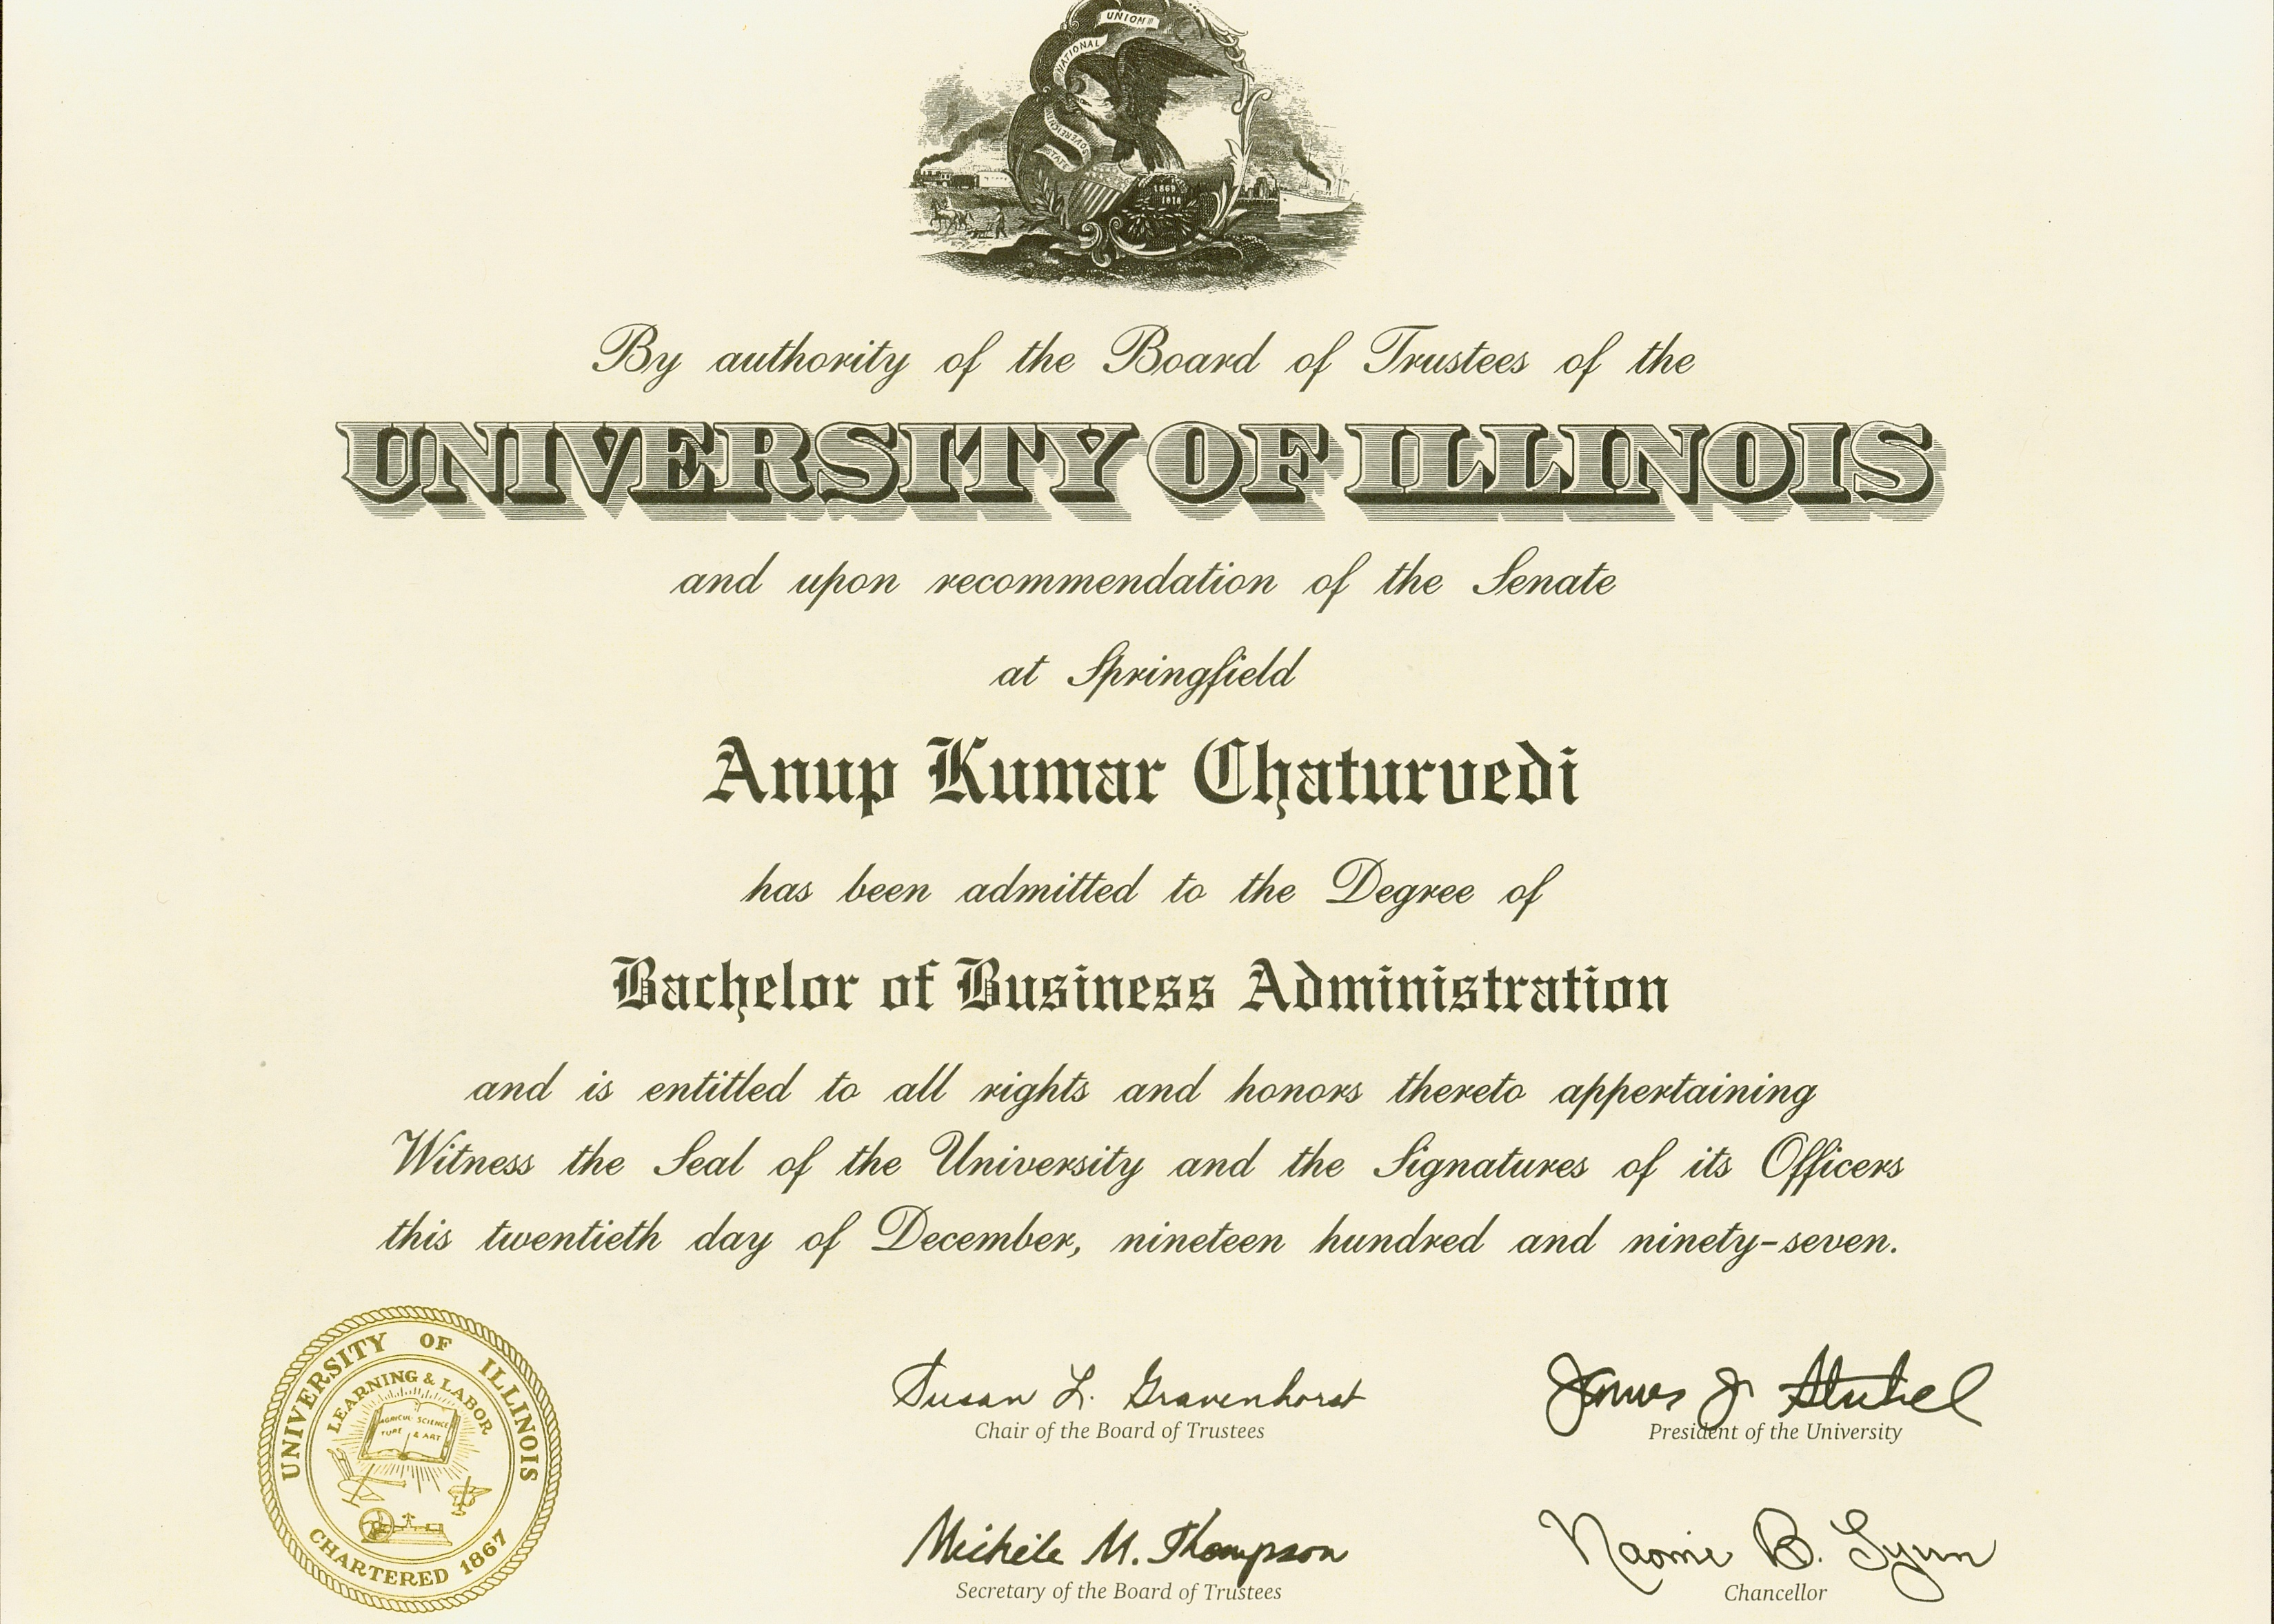 Bachelors Degree in Business Administration (1997)